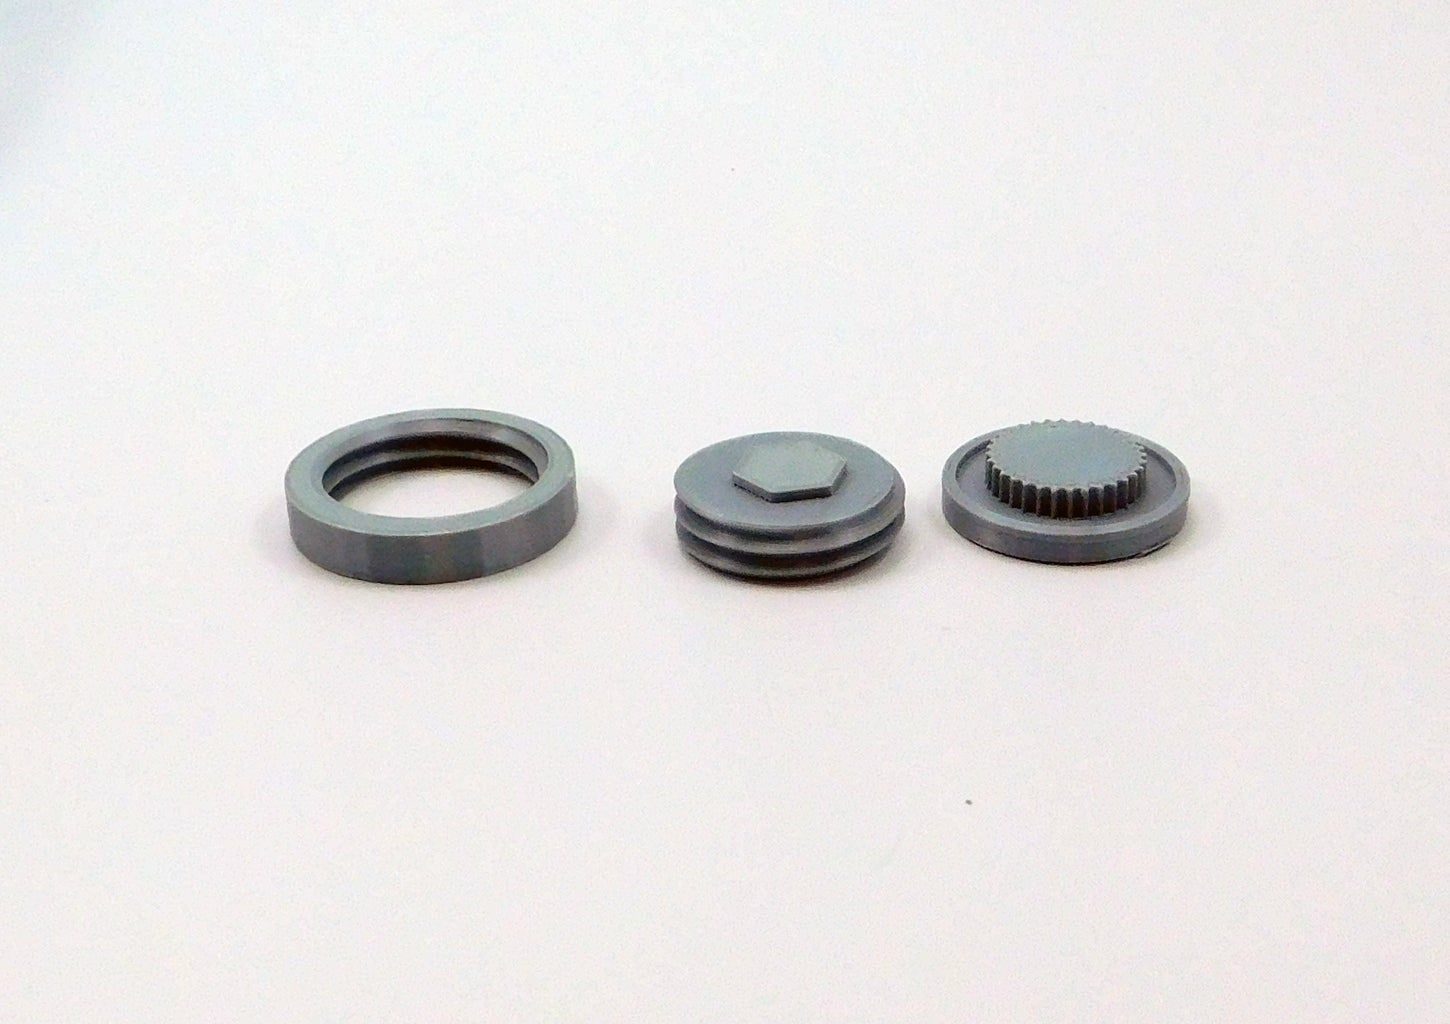 Model Assembly: Stopper and Threads